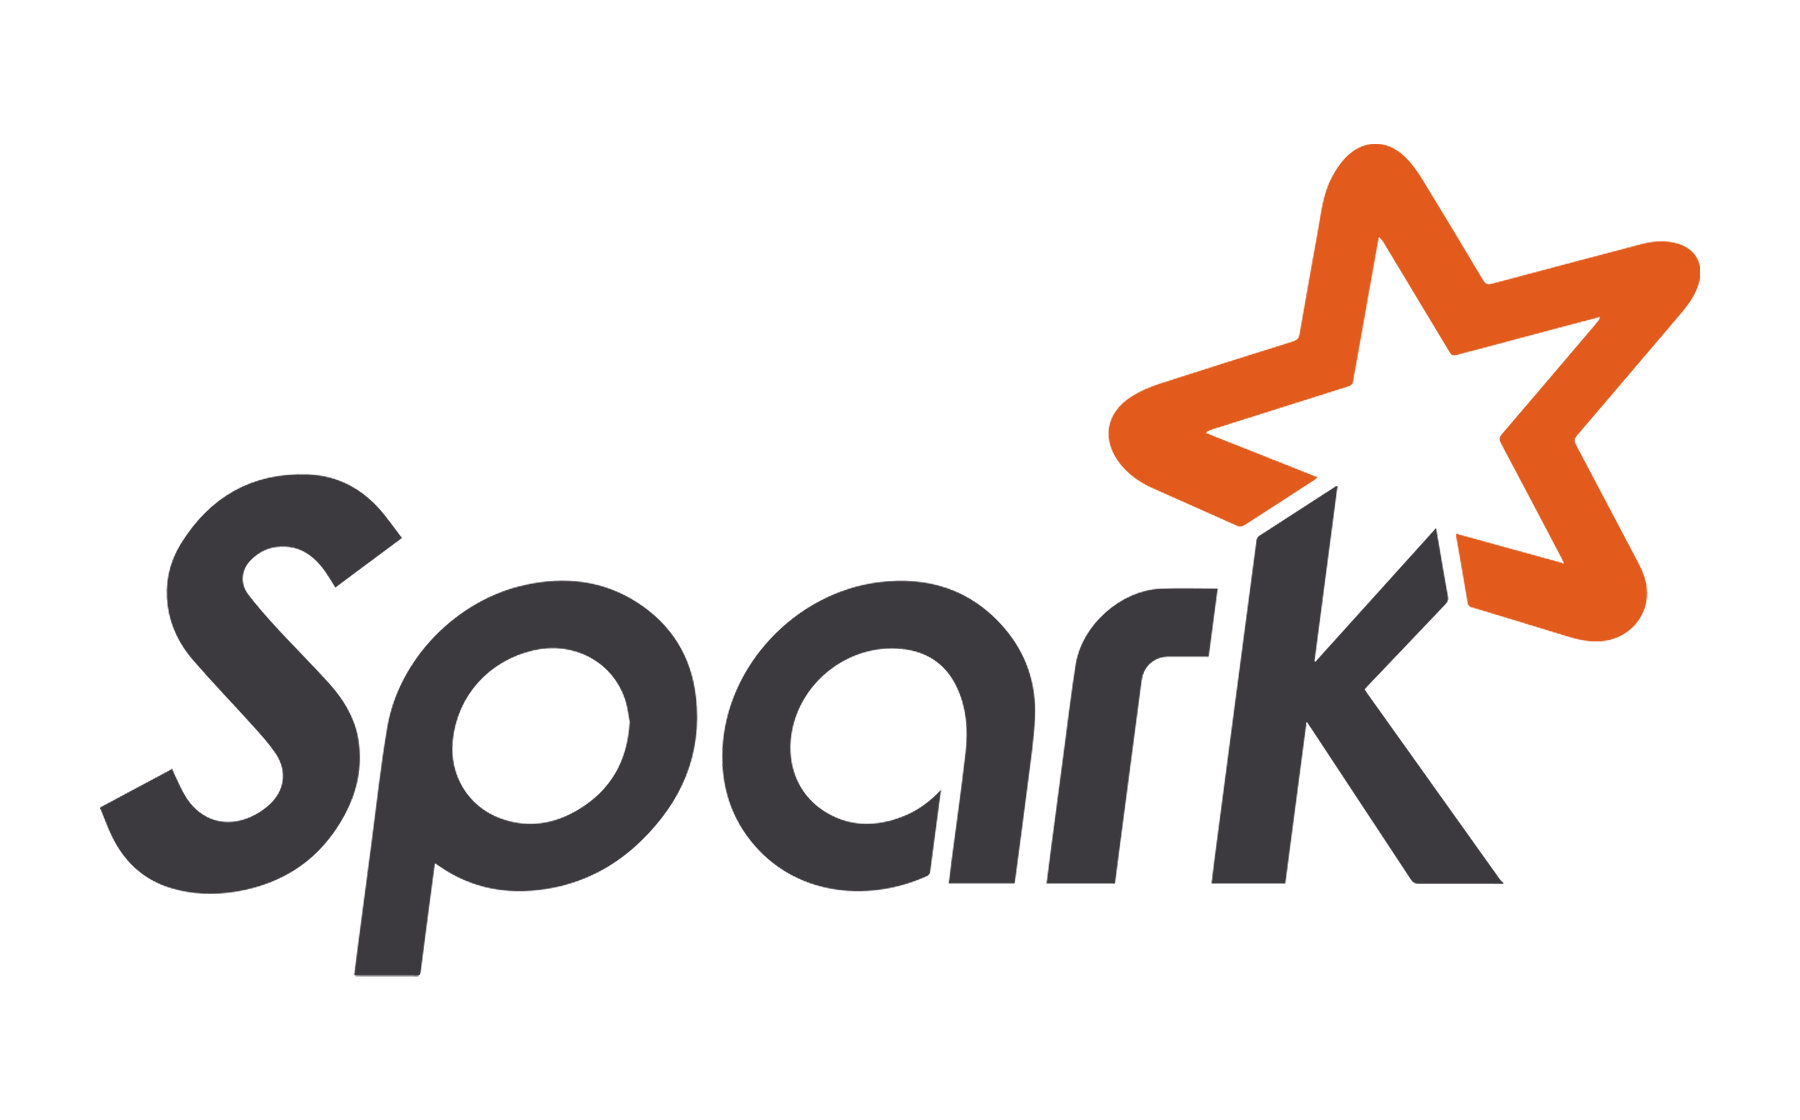 Joining Spark DataFrames Without Duplicate or Ambiguous Column Names